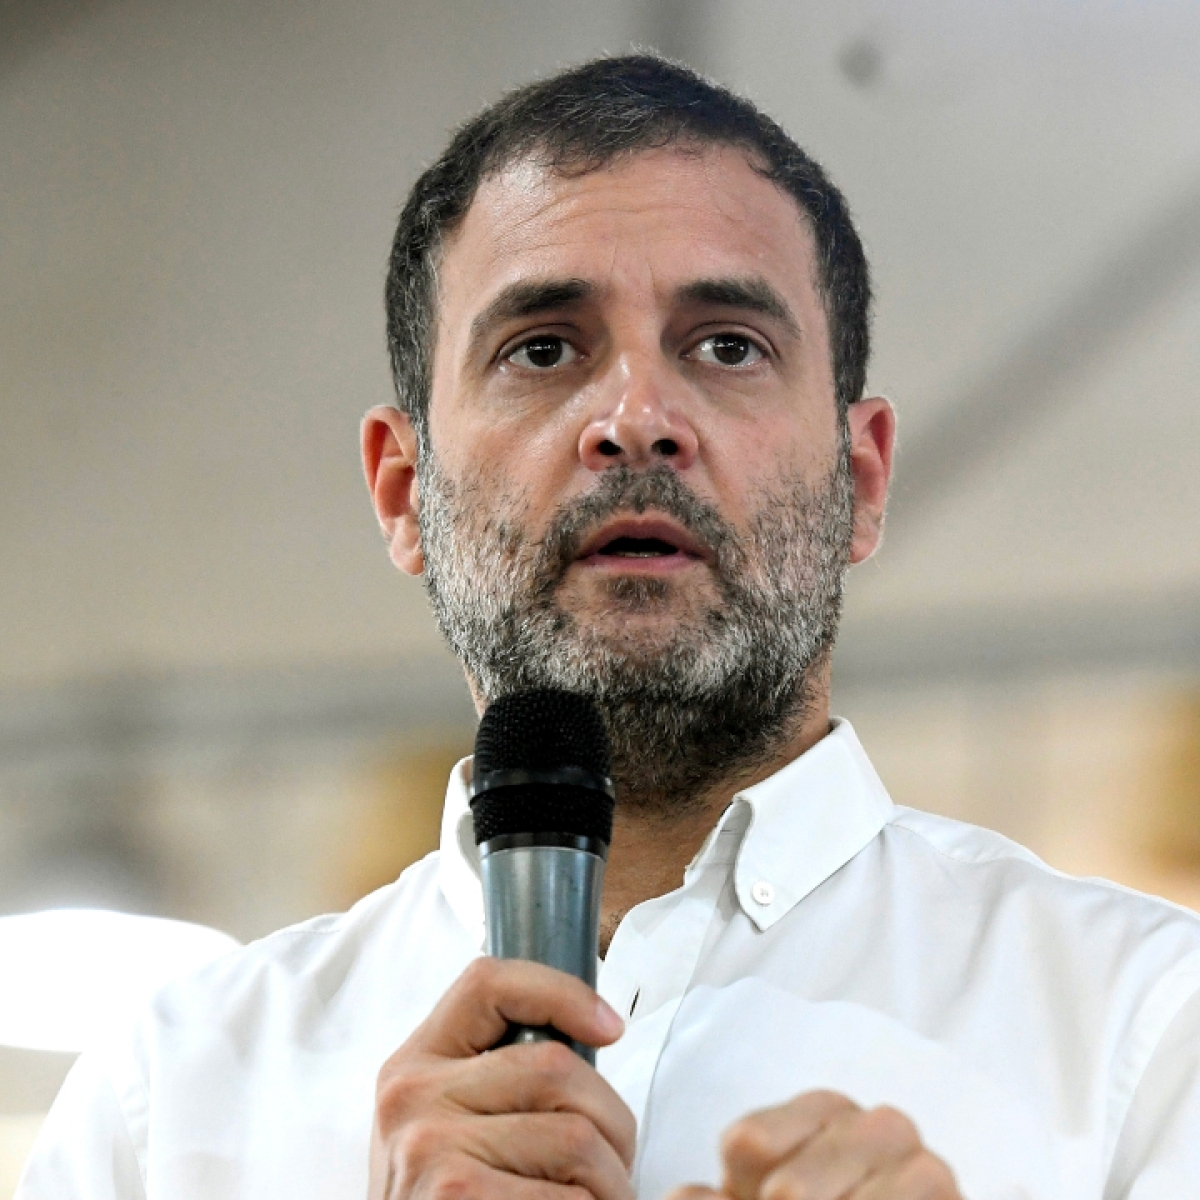 'Halt vaccine exports': Rahul Gandhi writes to PM Modi; seeks expansion of COVID-19 inoculation to 'everyone who needs it'